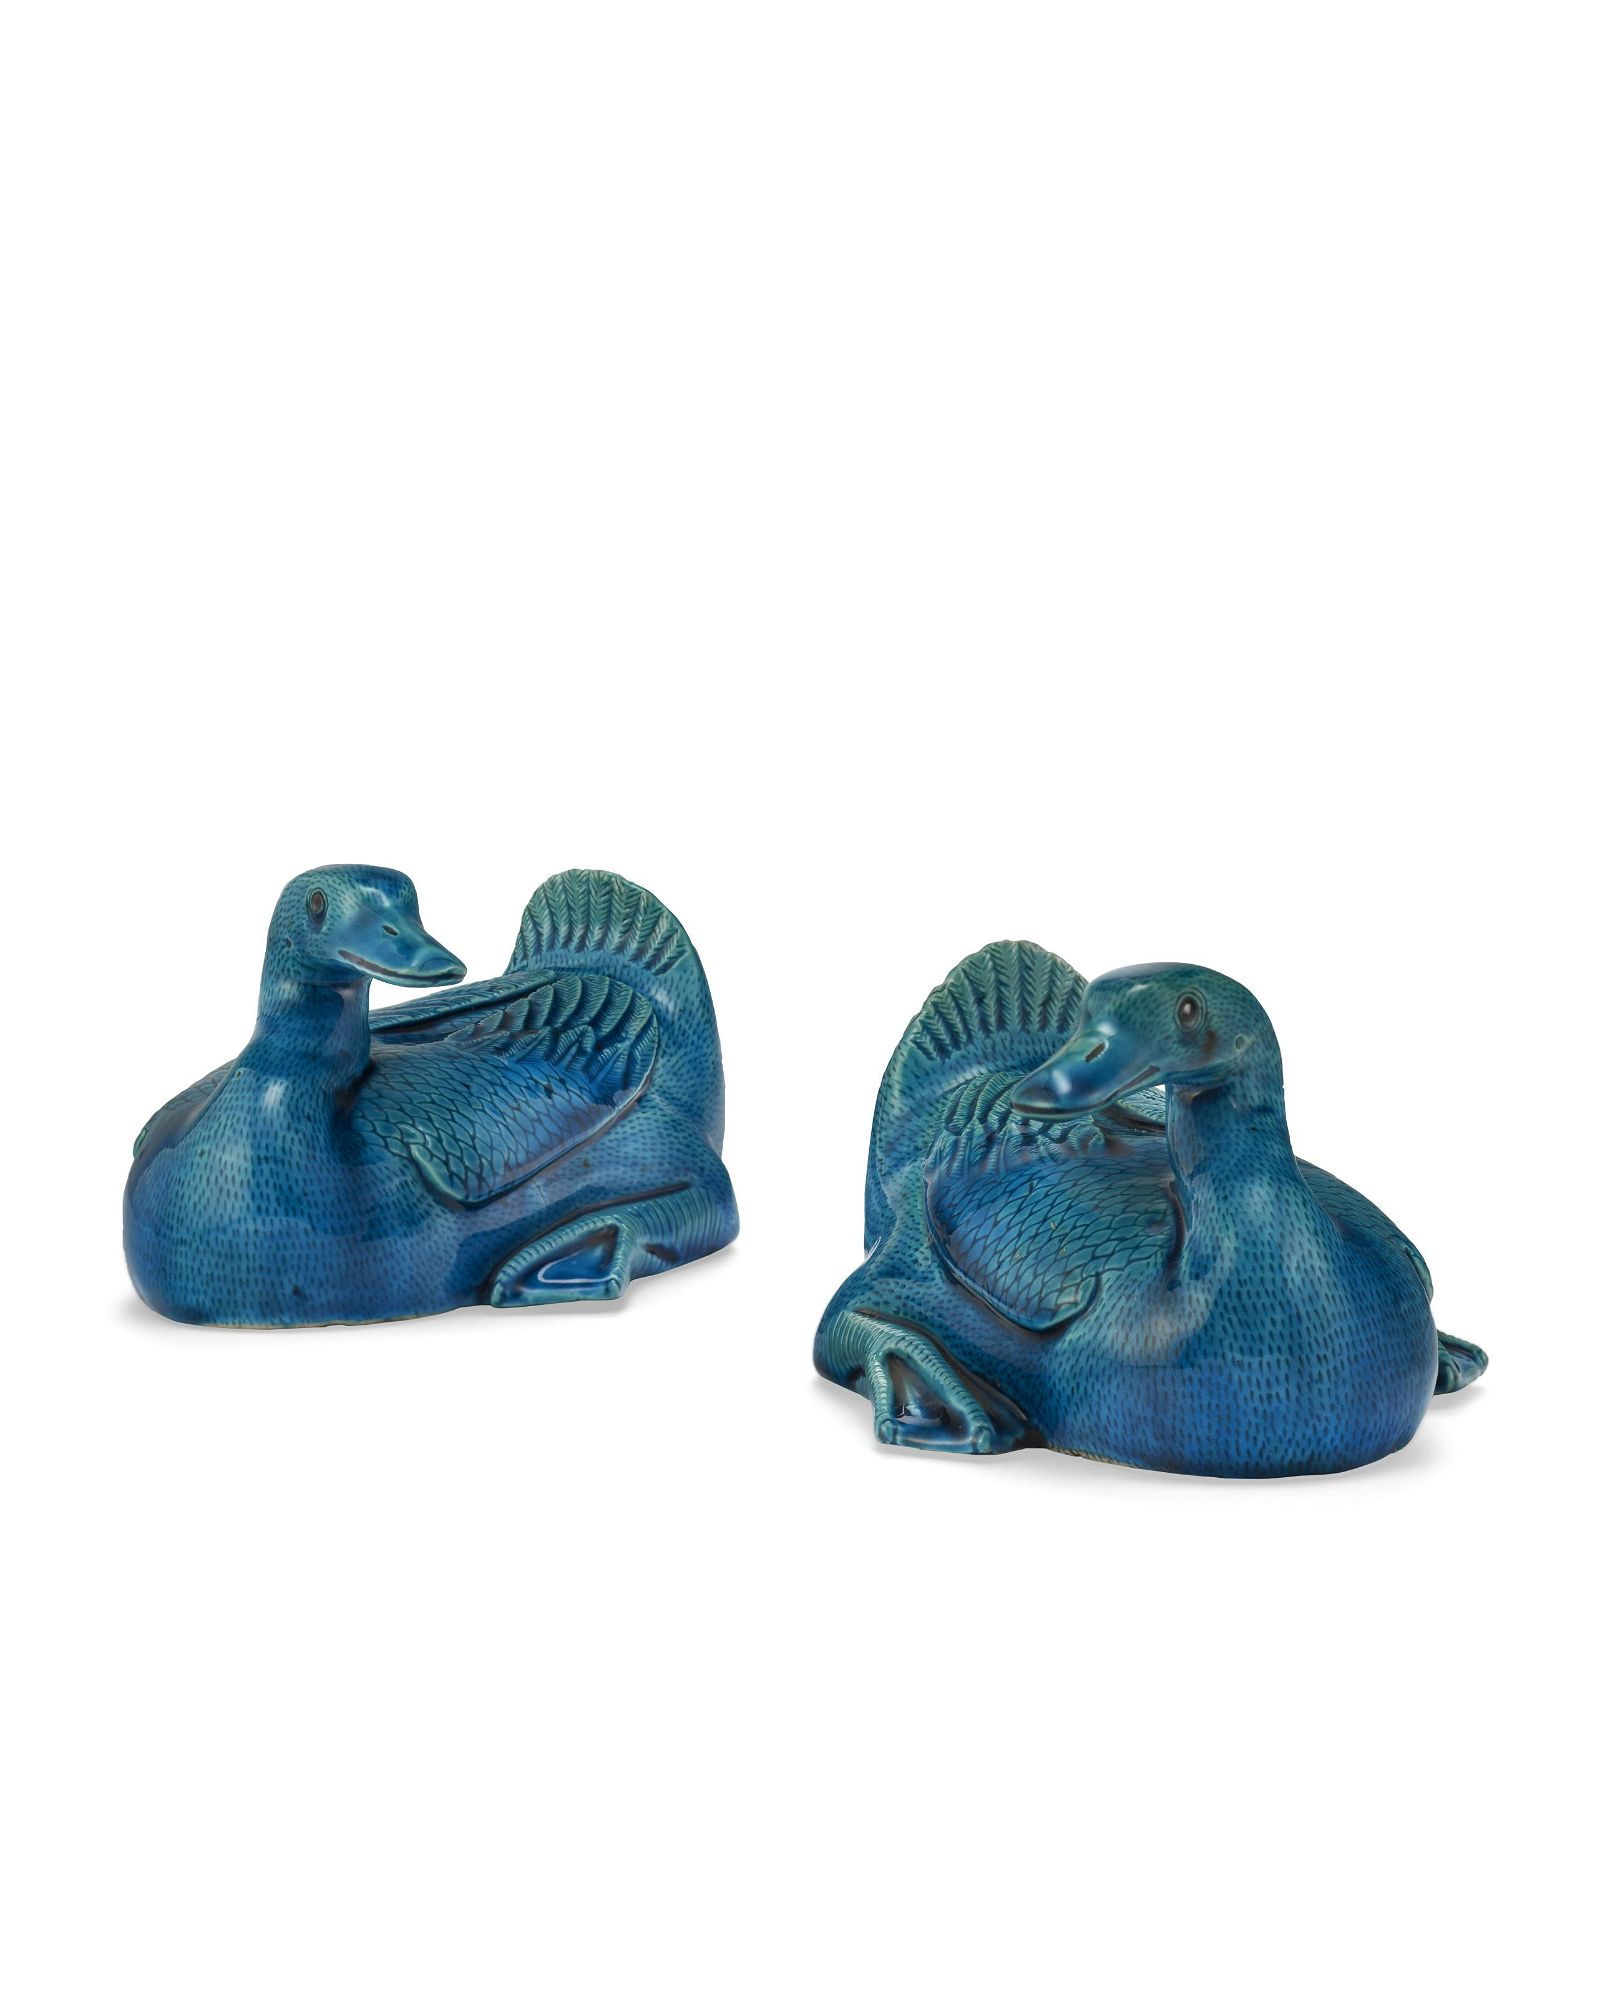 A PAIR OF CHINESE TURQUOISE-GLAZED DUCKS